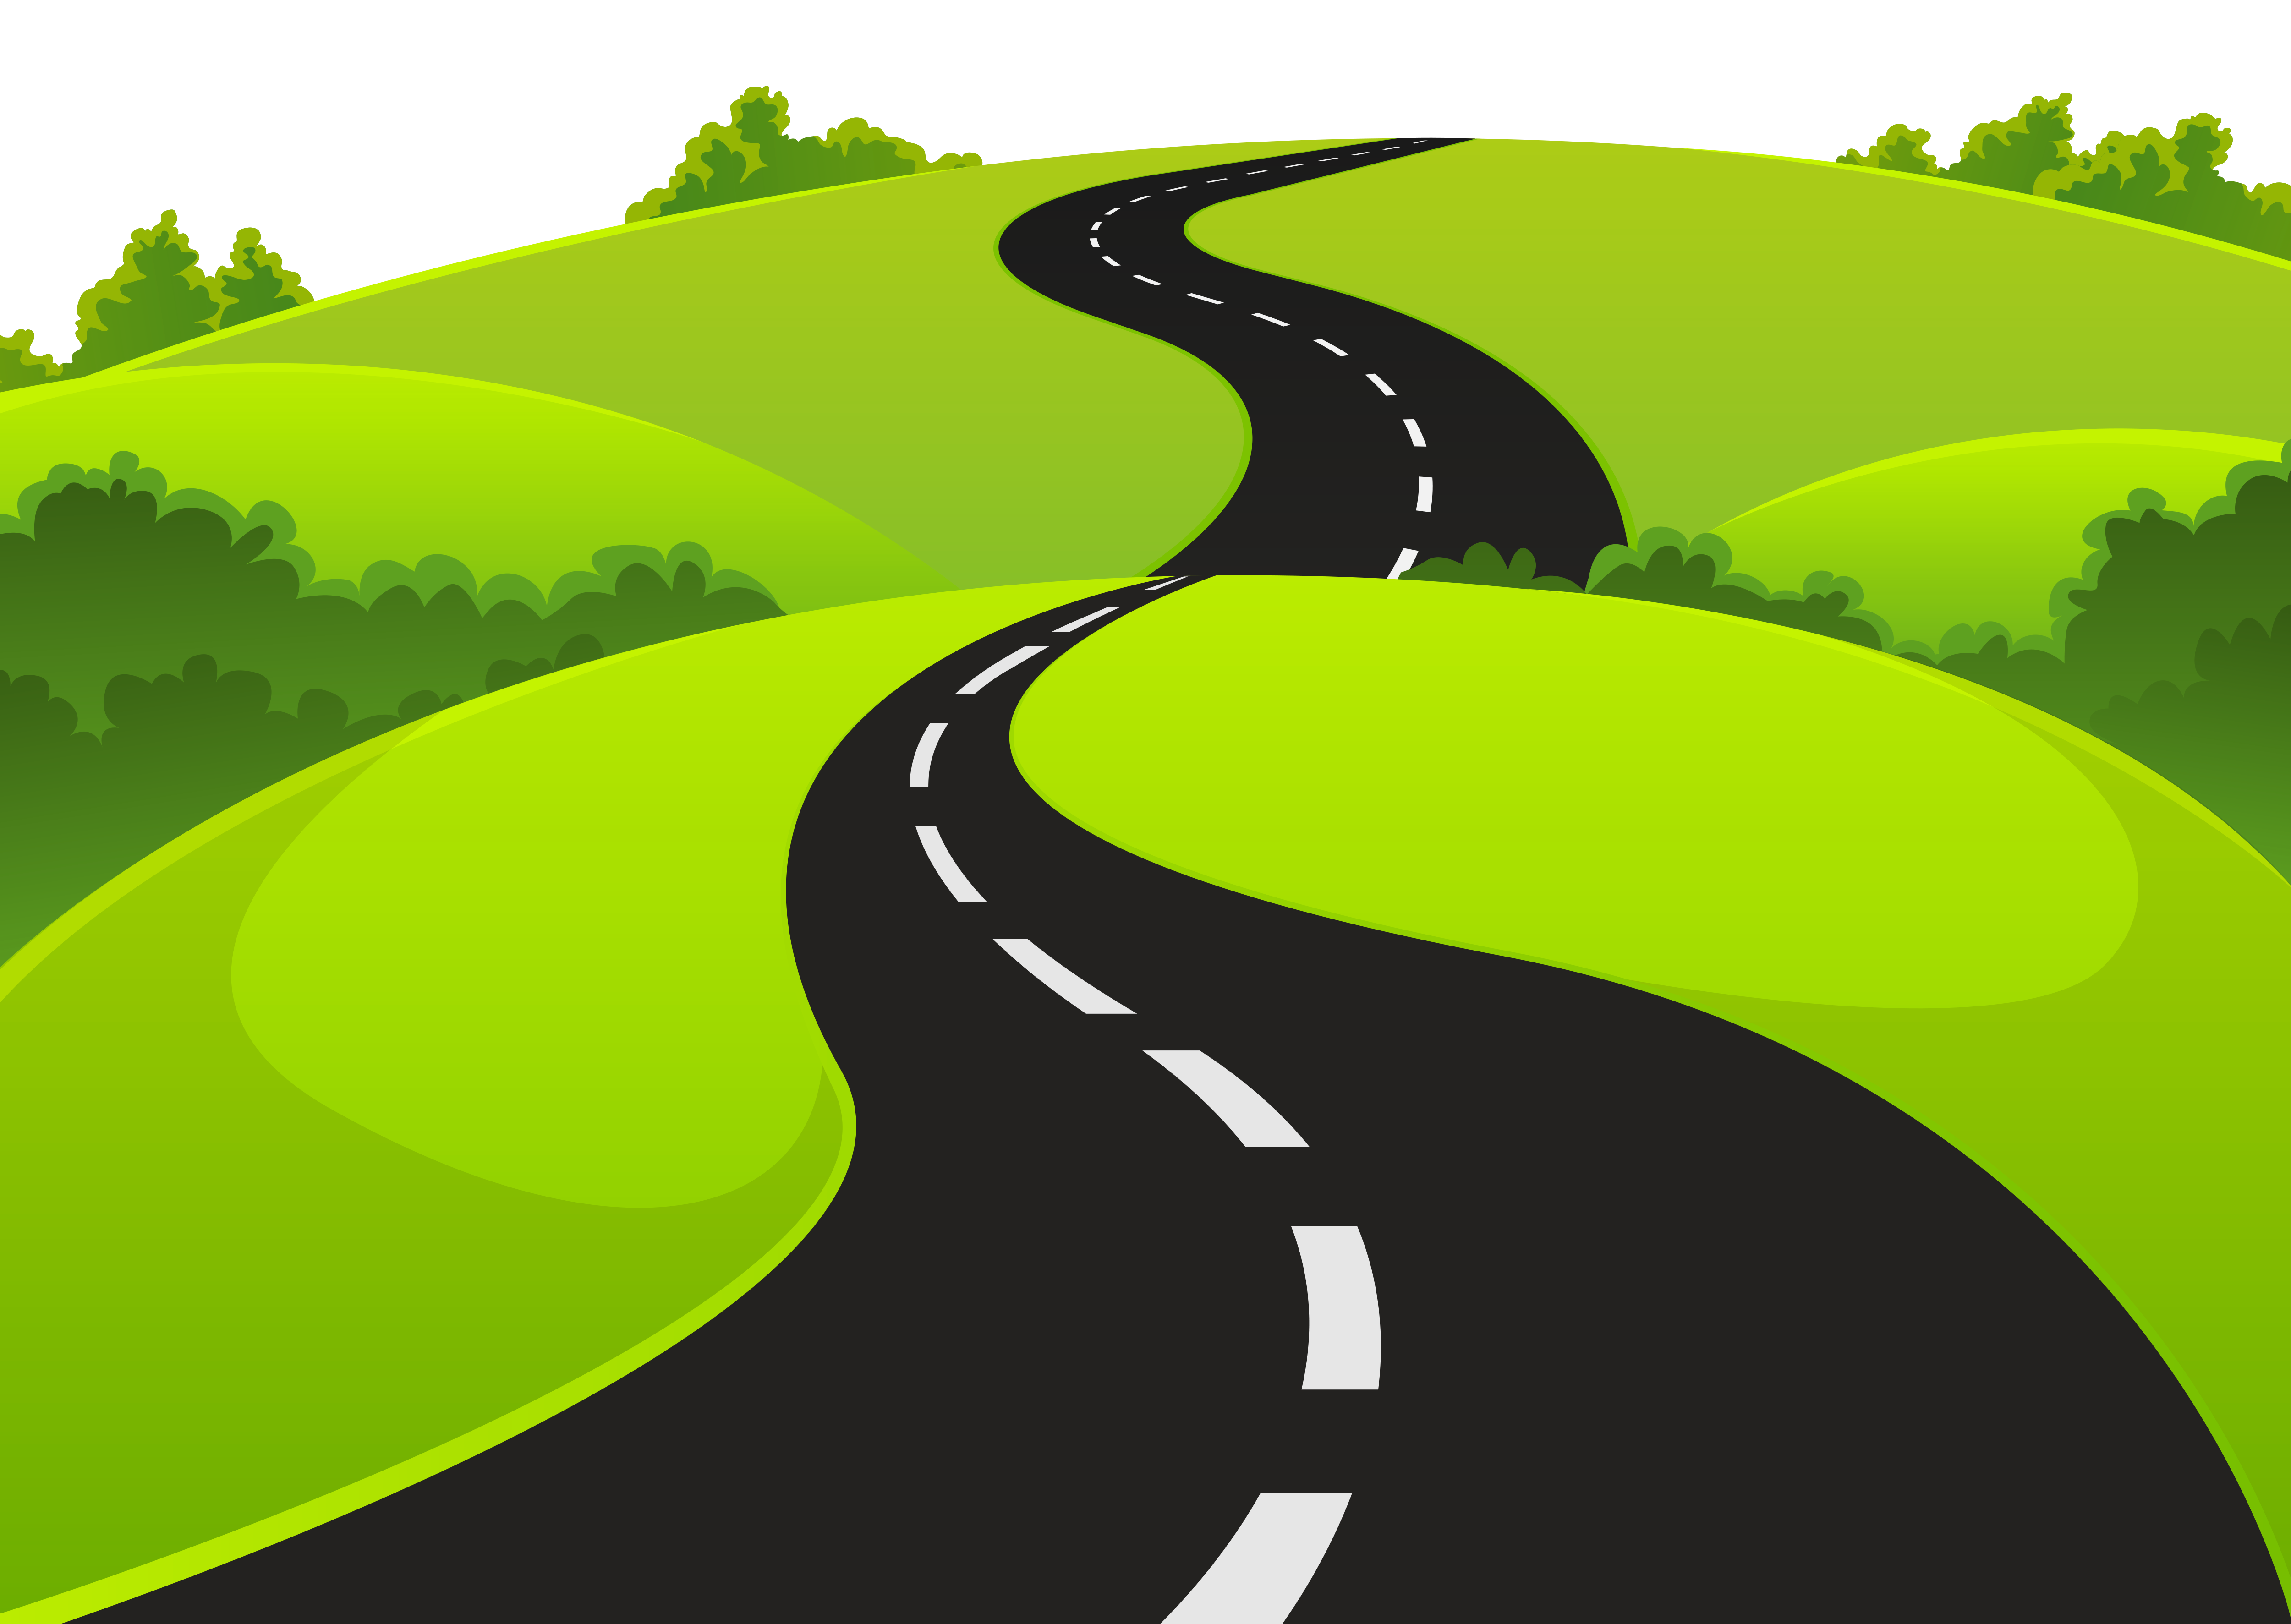 background road clipart 40 - photo #17